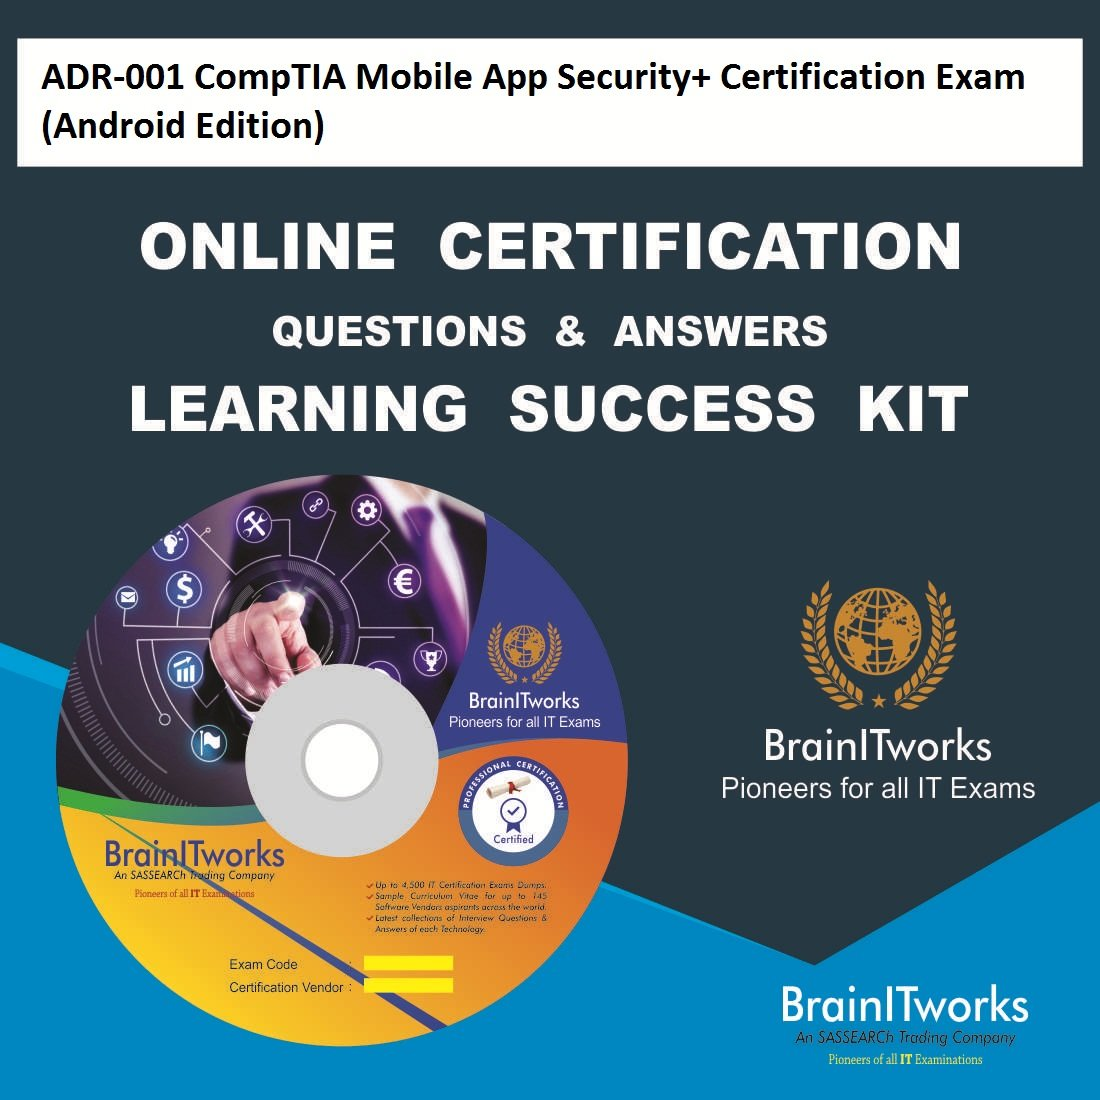 ADR-001 CompTIA Mobile App Security+ Certification Exam